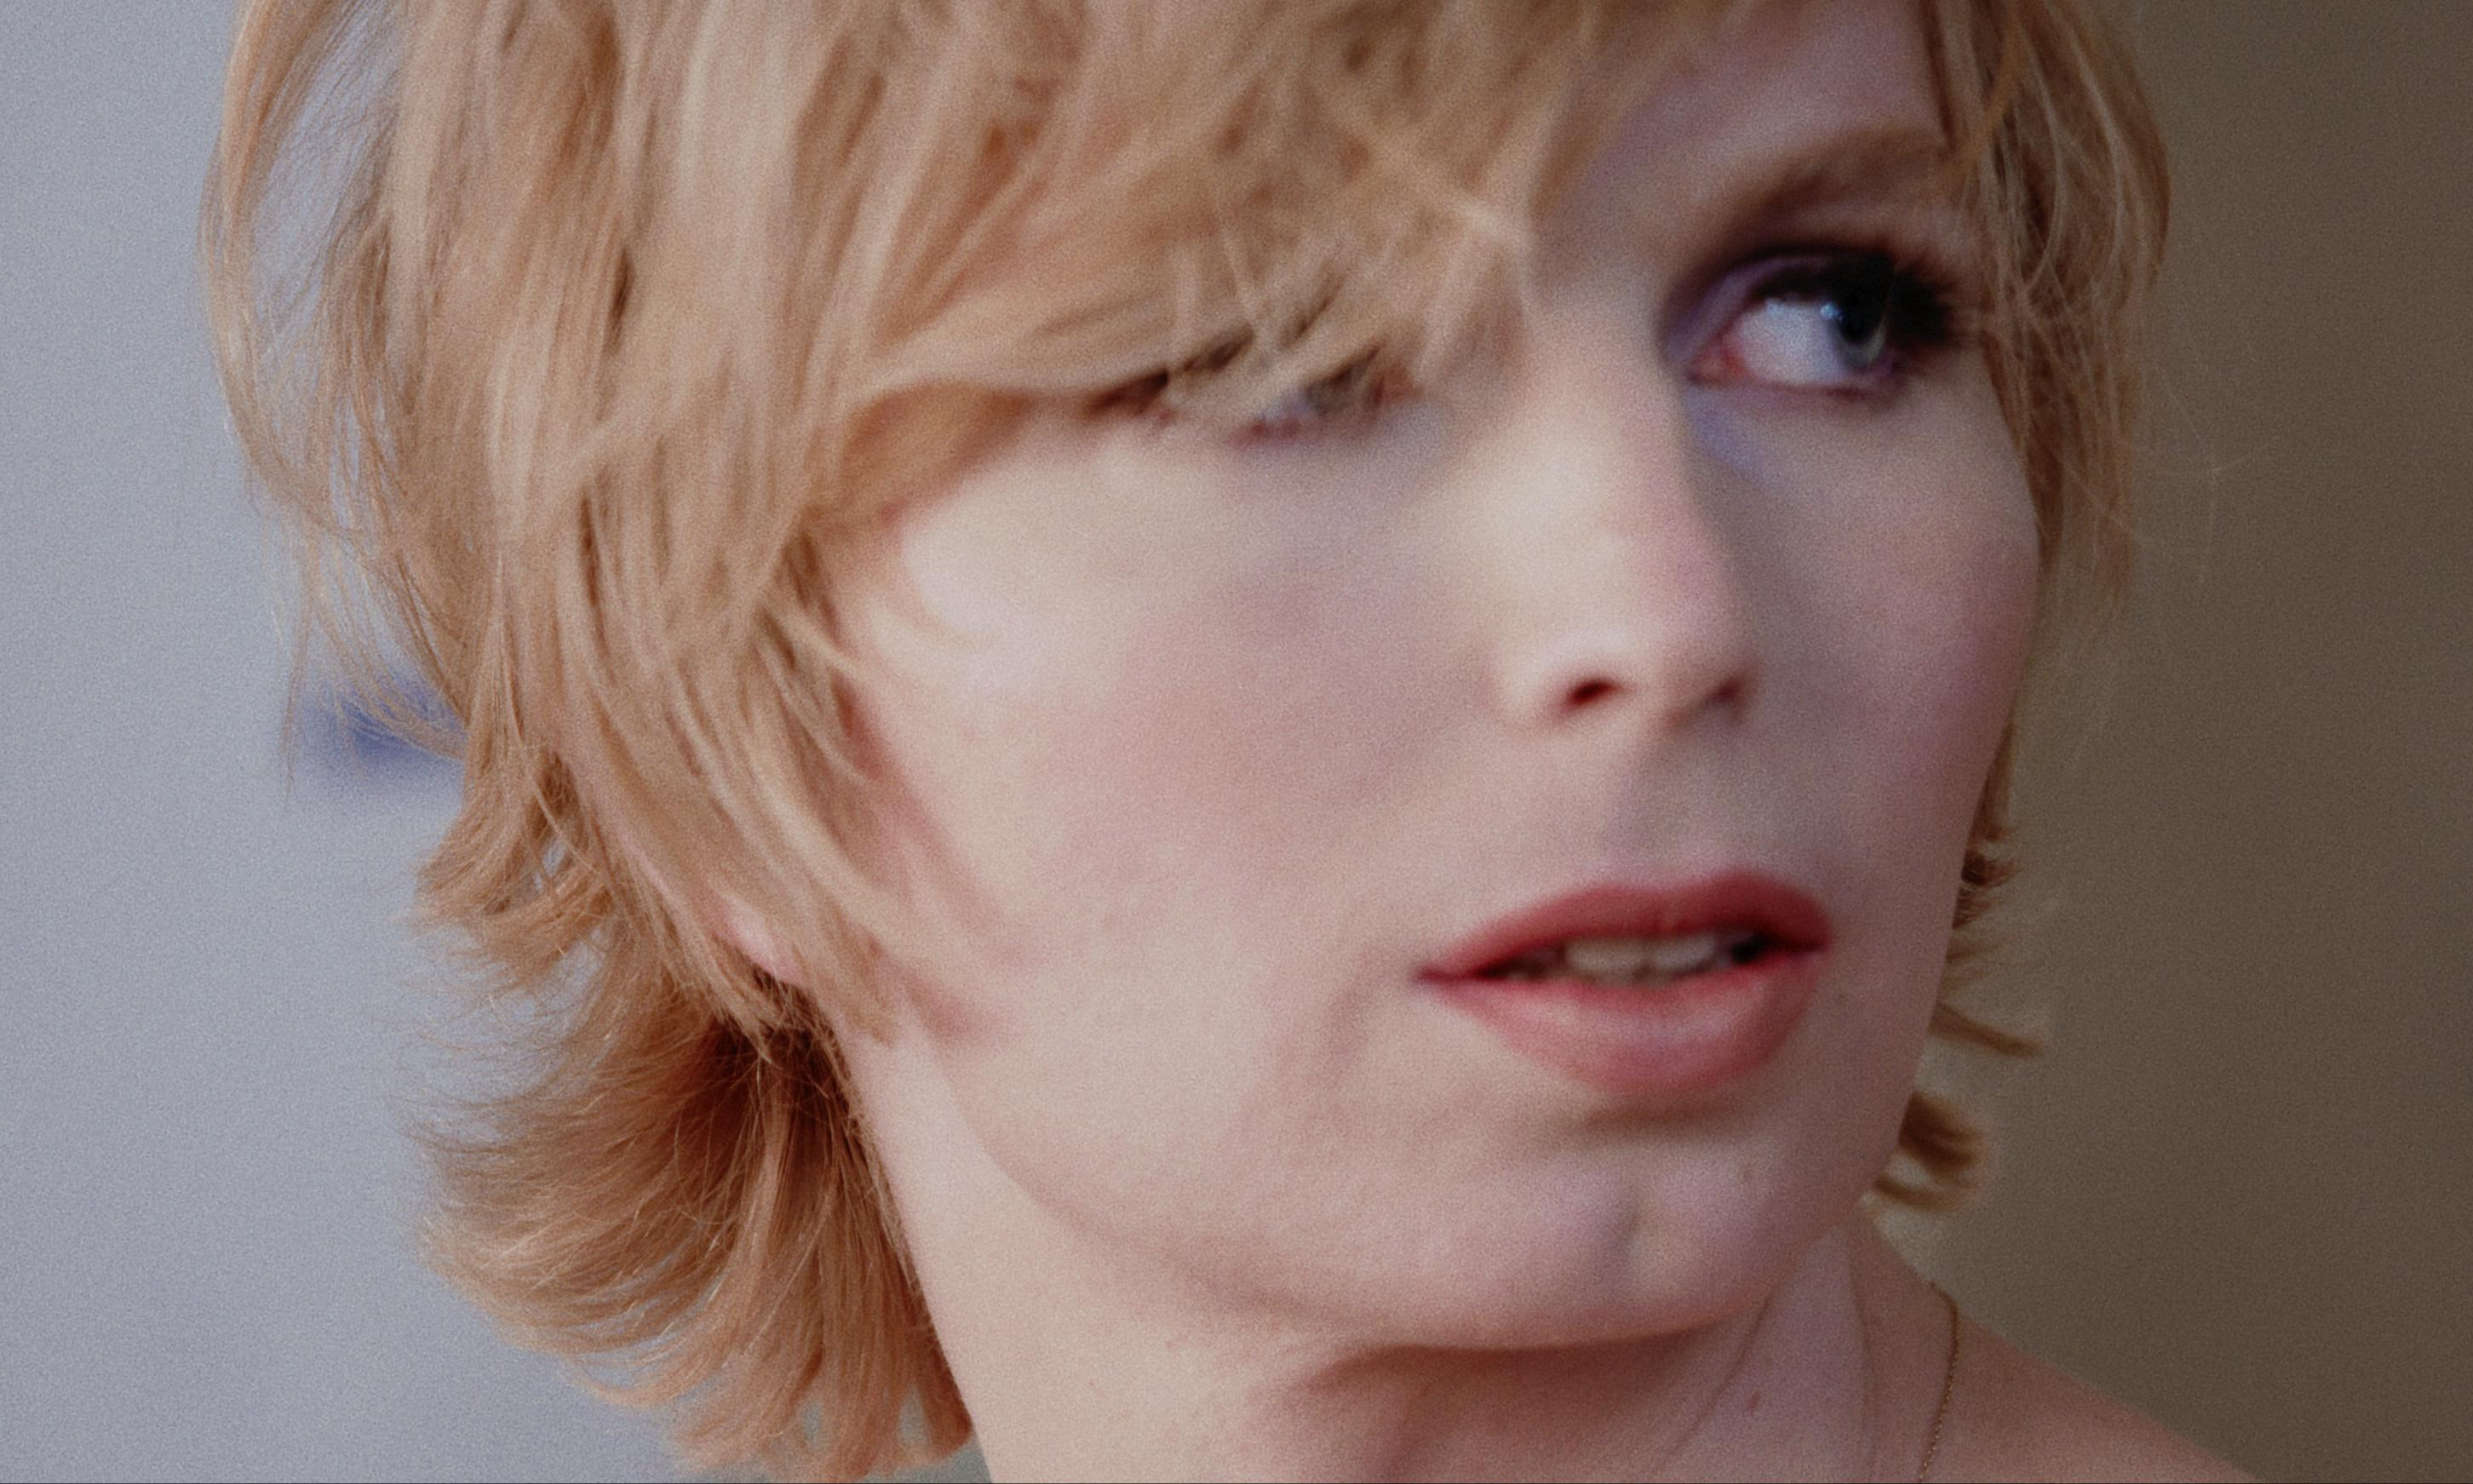 XY Chelsea review – extreme closeup on Chelsea Manning's complex life